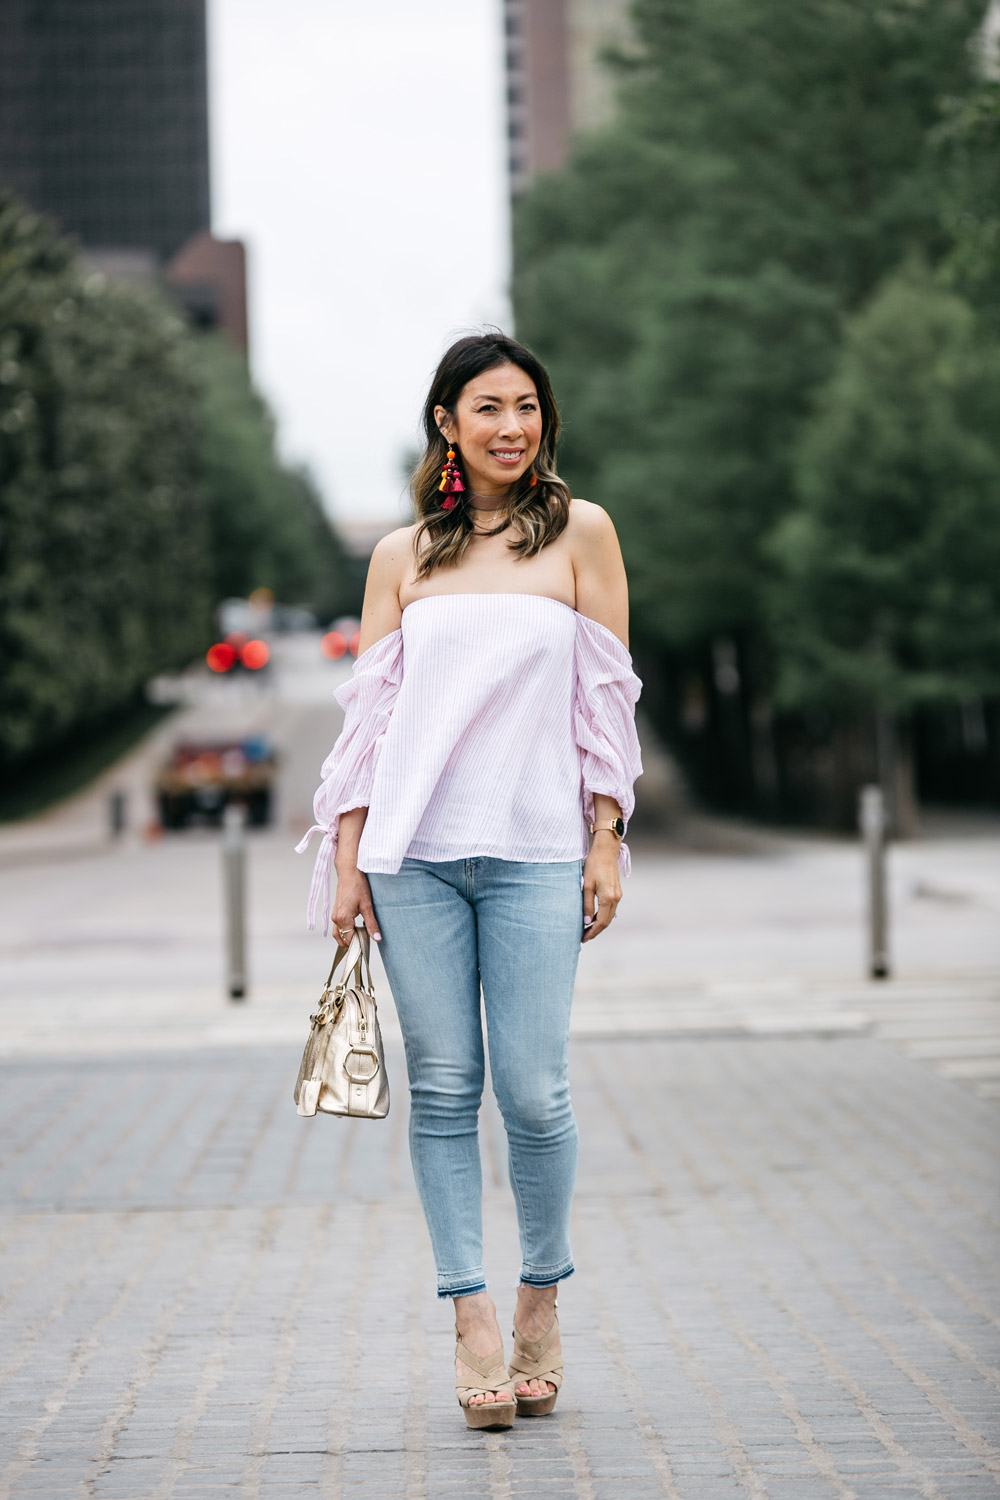 club monaco liki top, kate spade pretty pom tassel drop earrings, citizens of humanity rocket crop light wash jeans, joie platform sandals, gold ysl mini muse bag